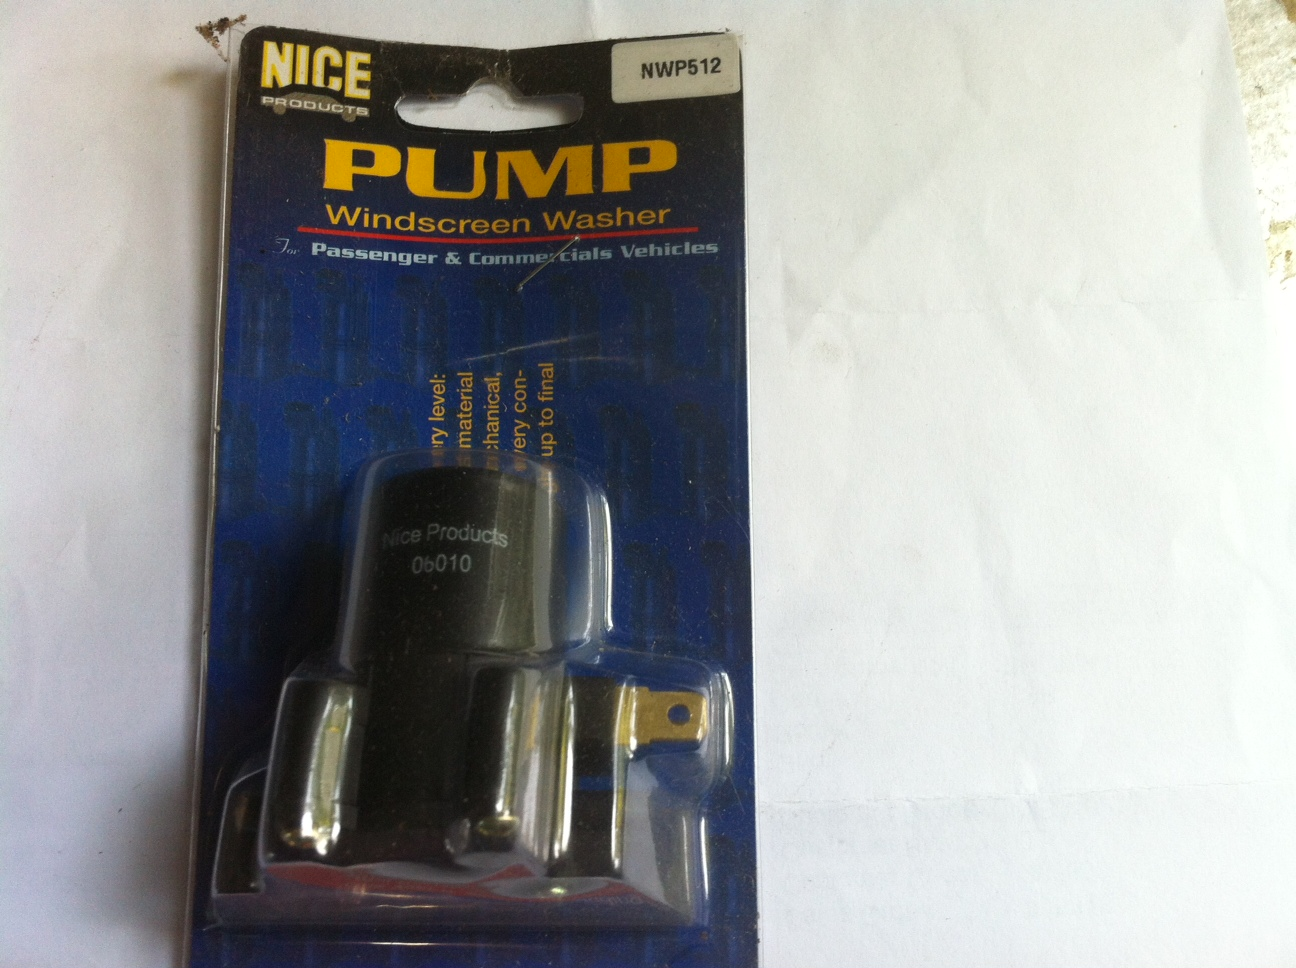 NWP512 Washer Pump